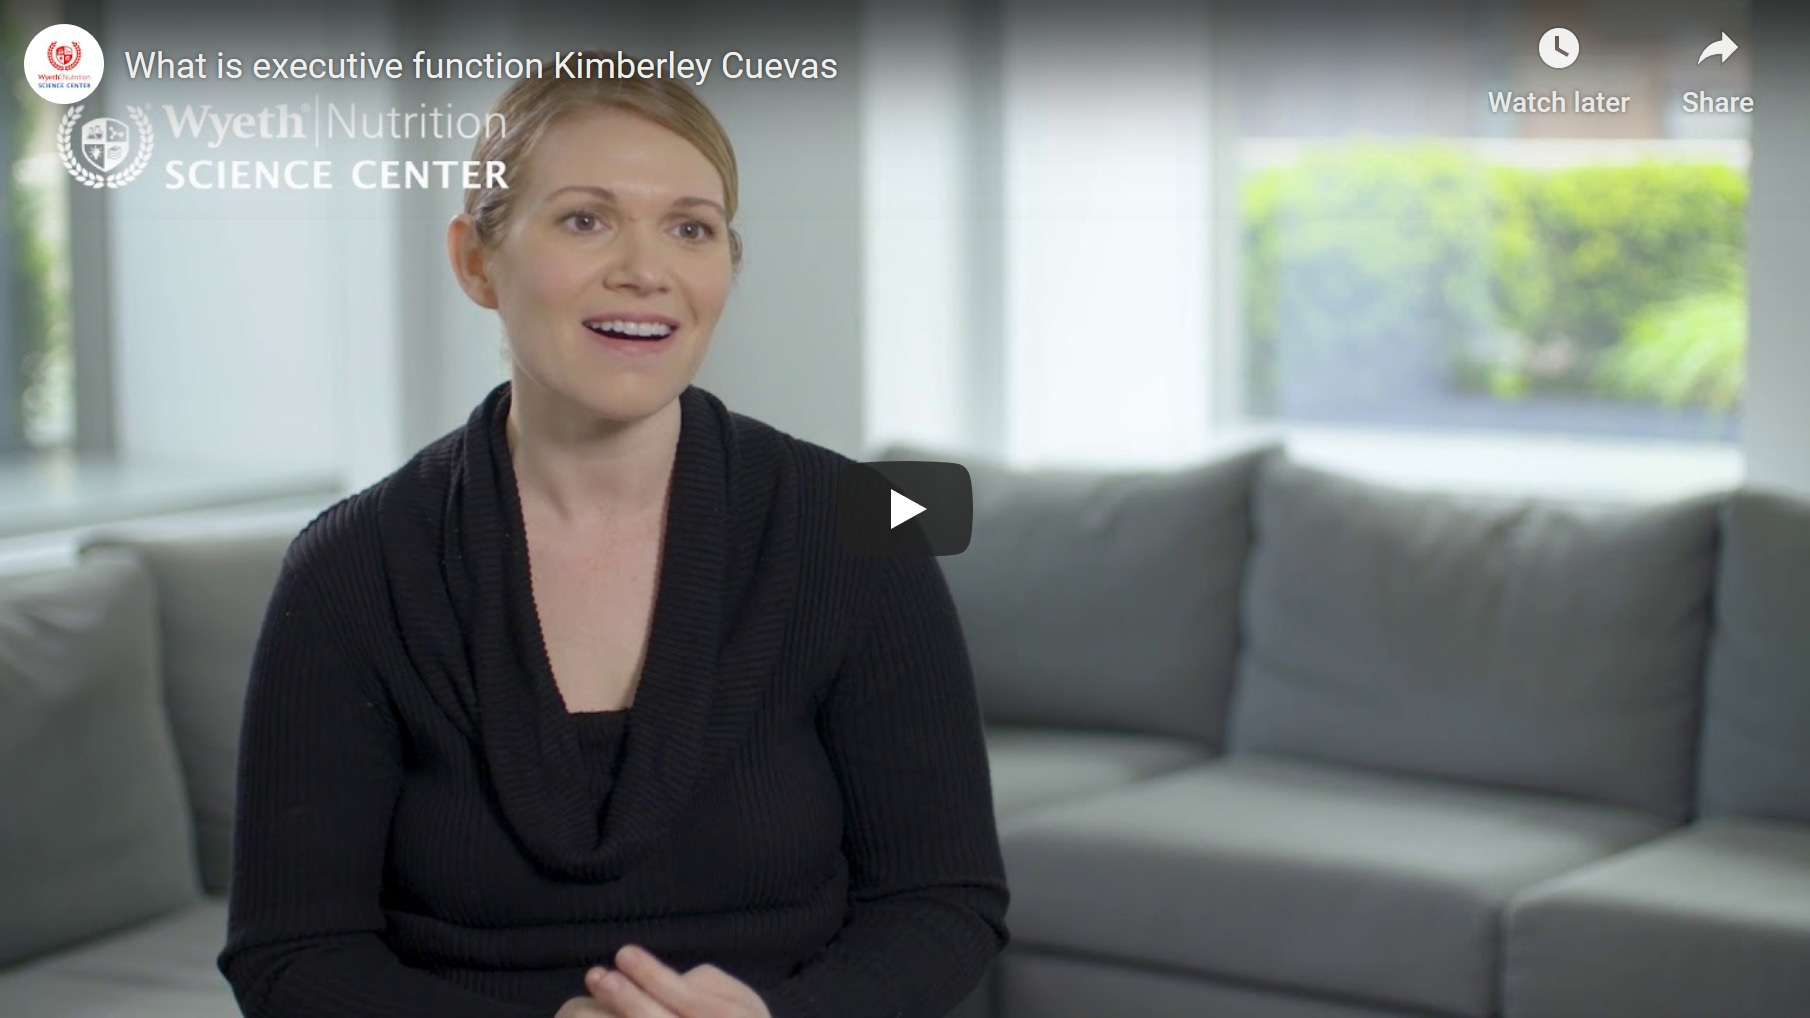 What is executive function - Prof. Kimberley Cuevas